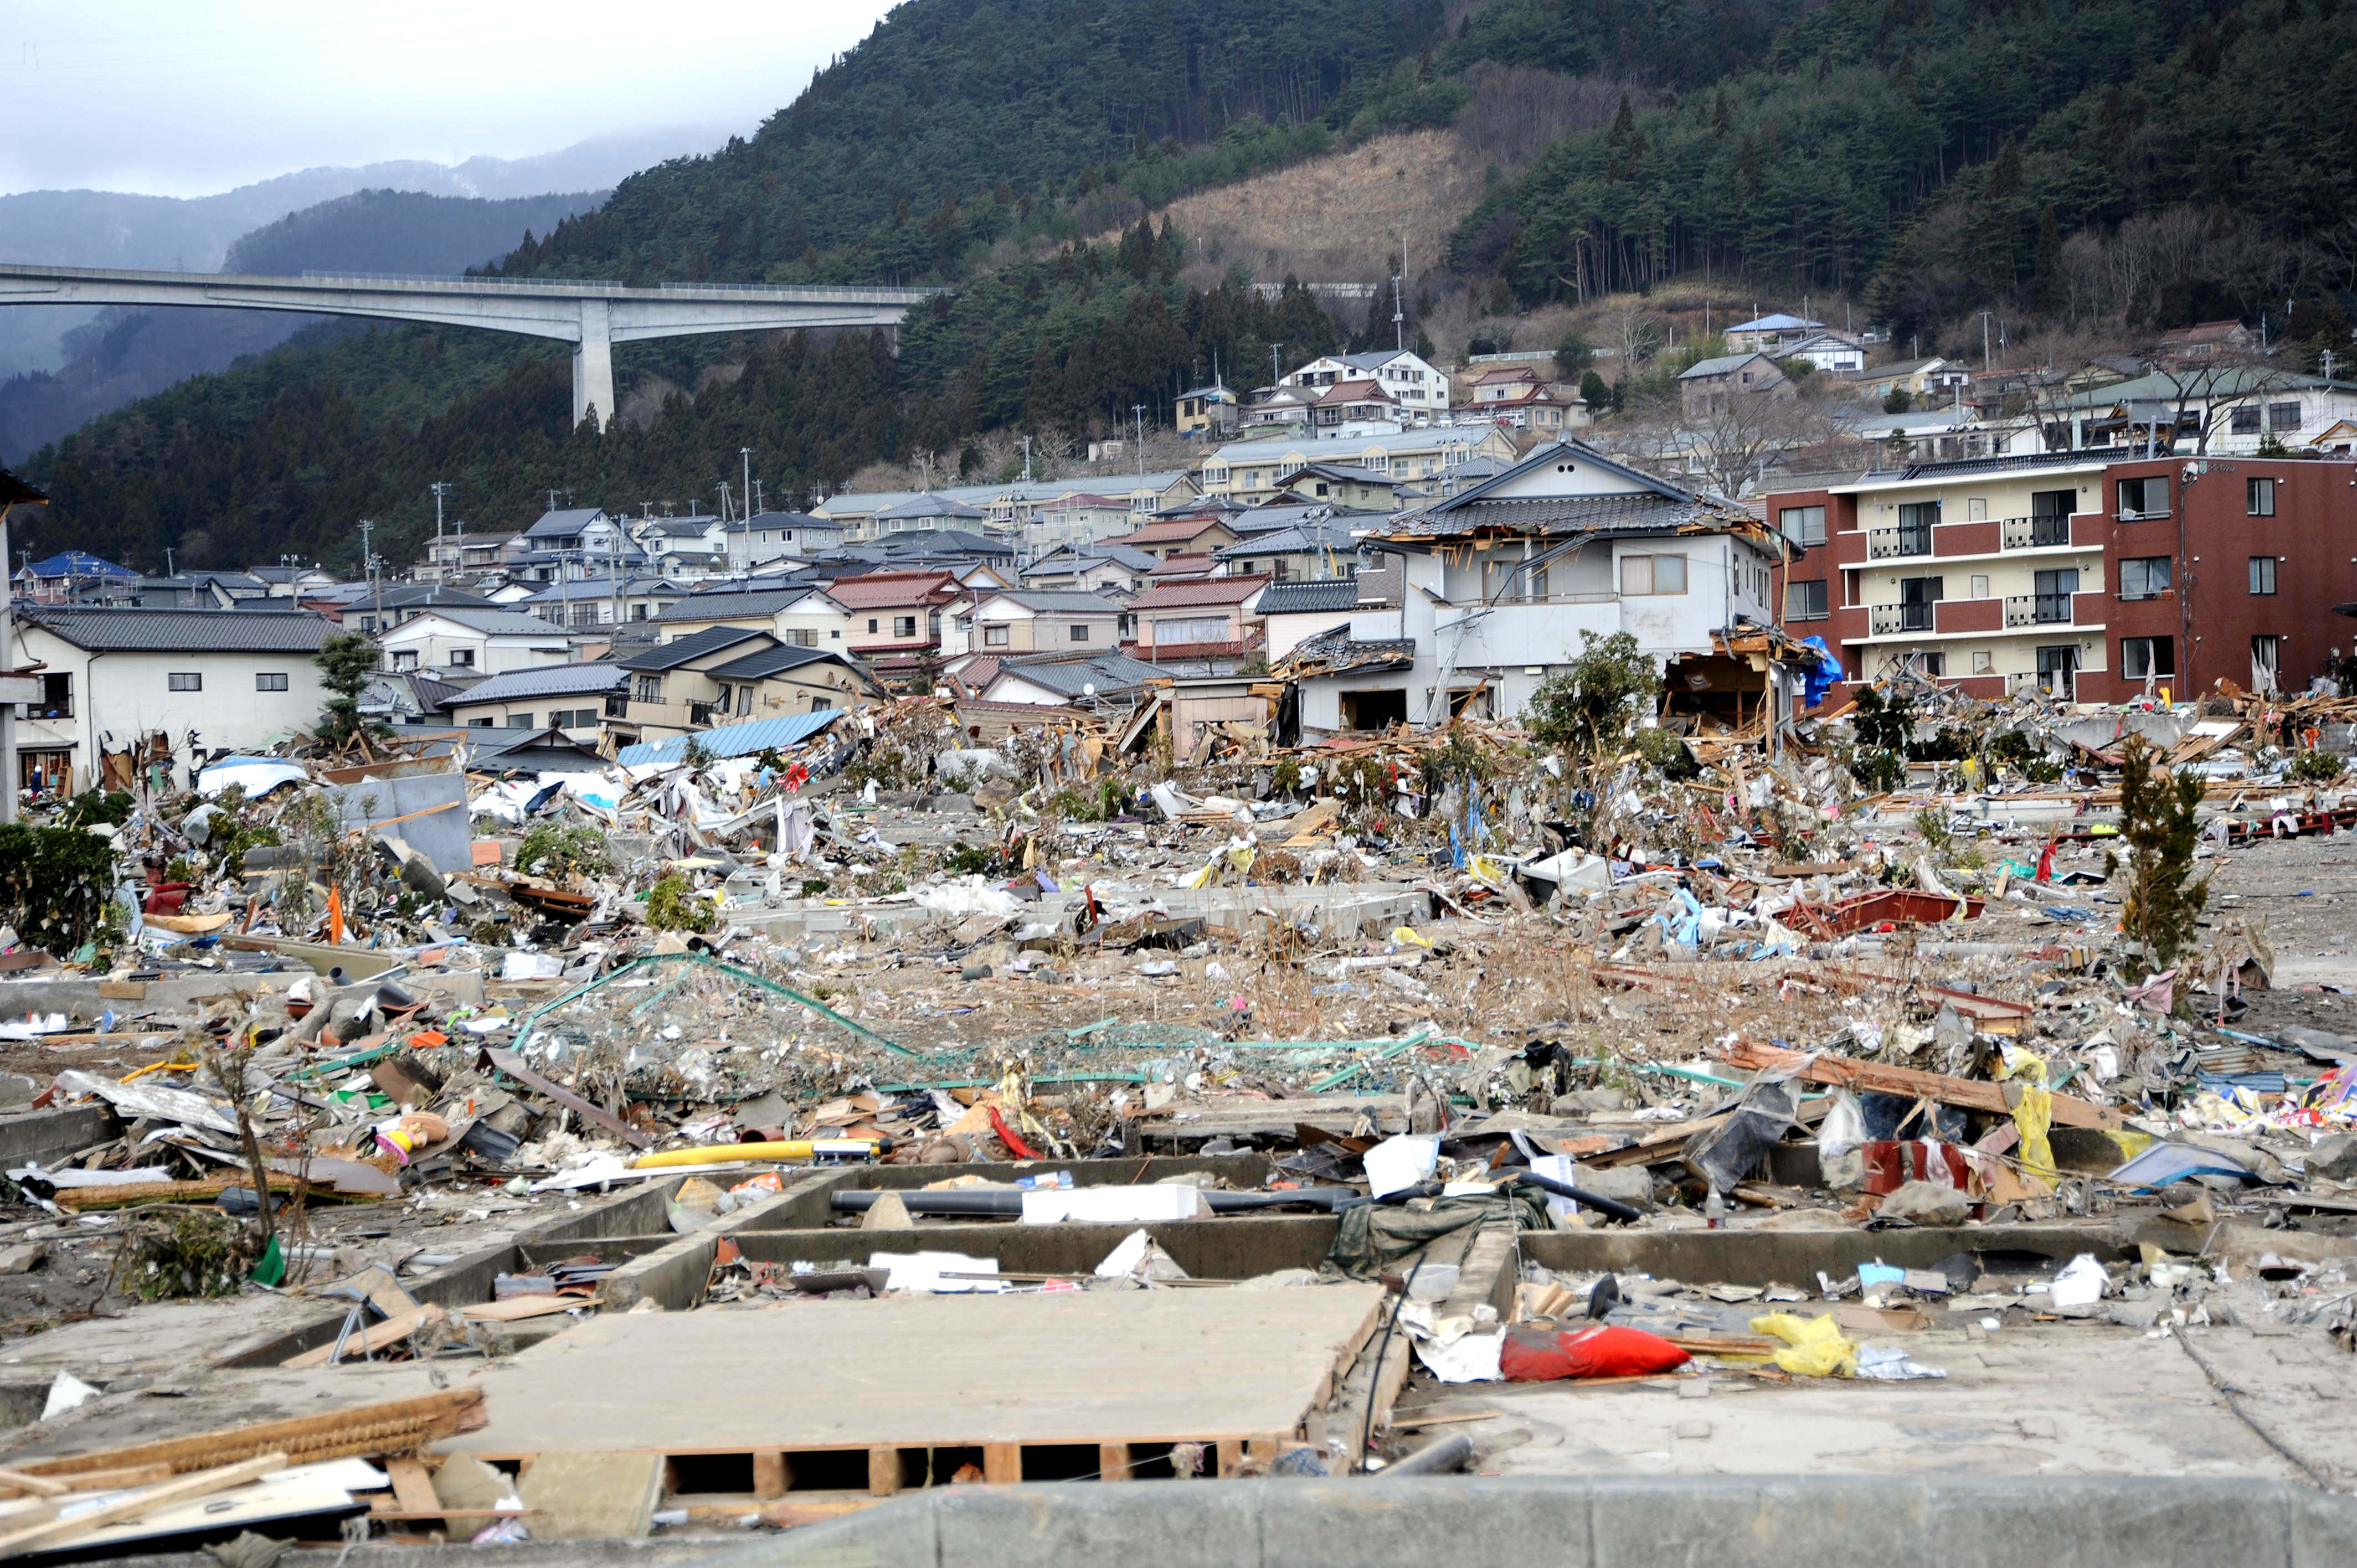 tsunami description essay Tsunami is a japanese word meaning very tall tidal or harbor waves the tsunami that took place around 630 am on 26th december, 2006 was caused by a massive under water earthquake near sumatra in indonesia.